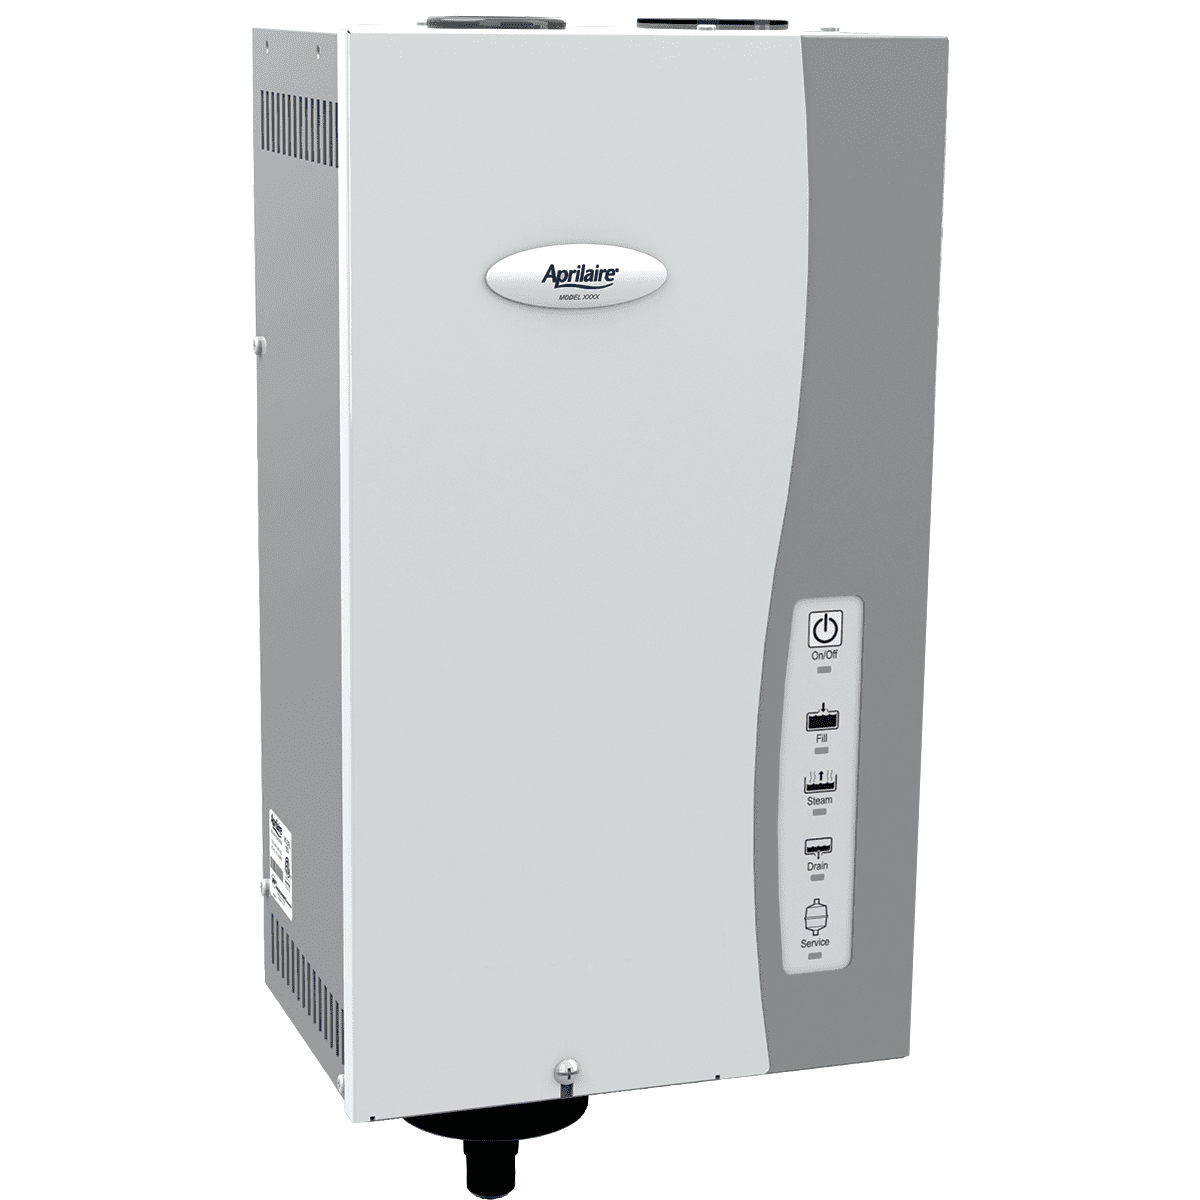 Image of Aprilaire Model 800 Whole House Steam Humidifier